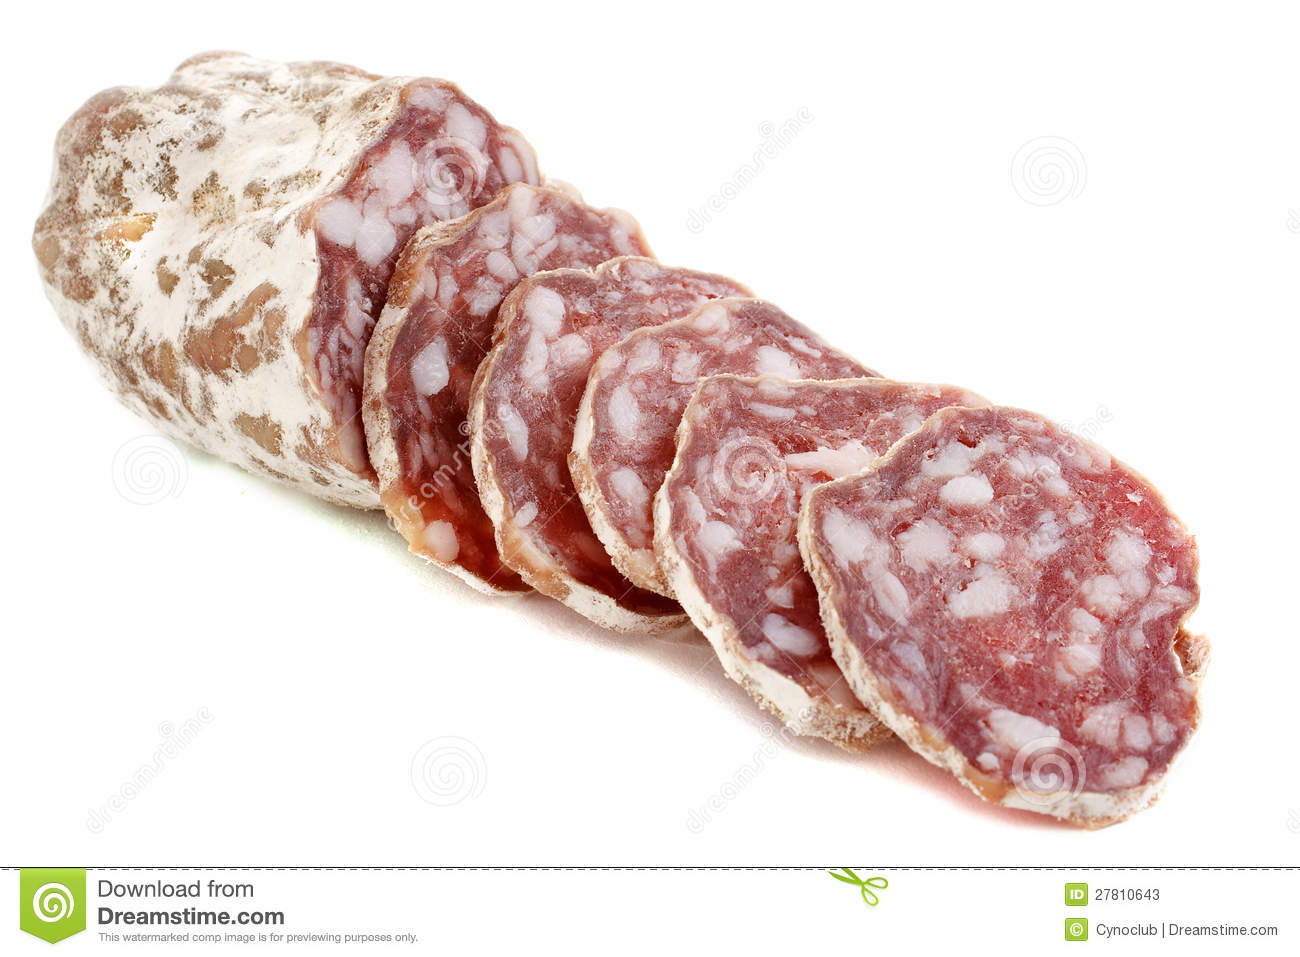 Sliced French saucisson in front of white background.